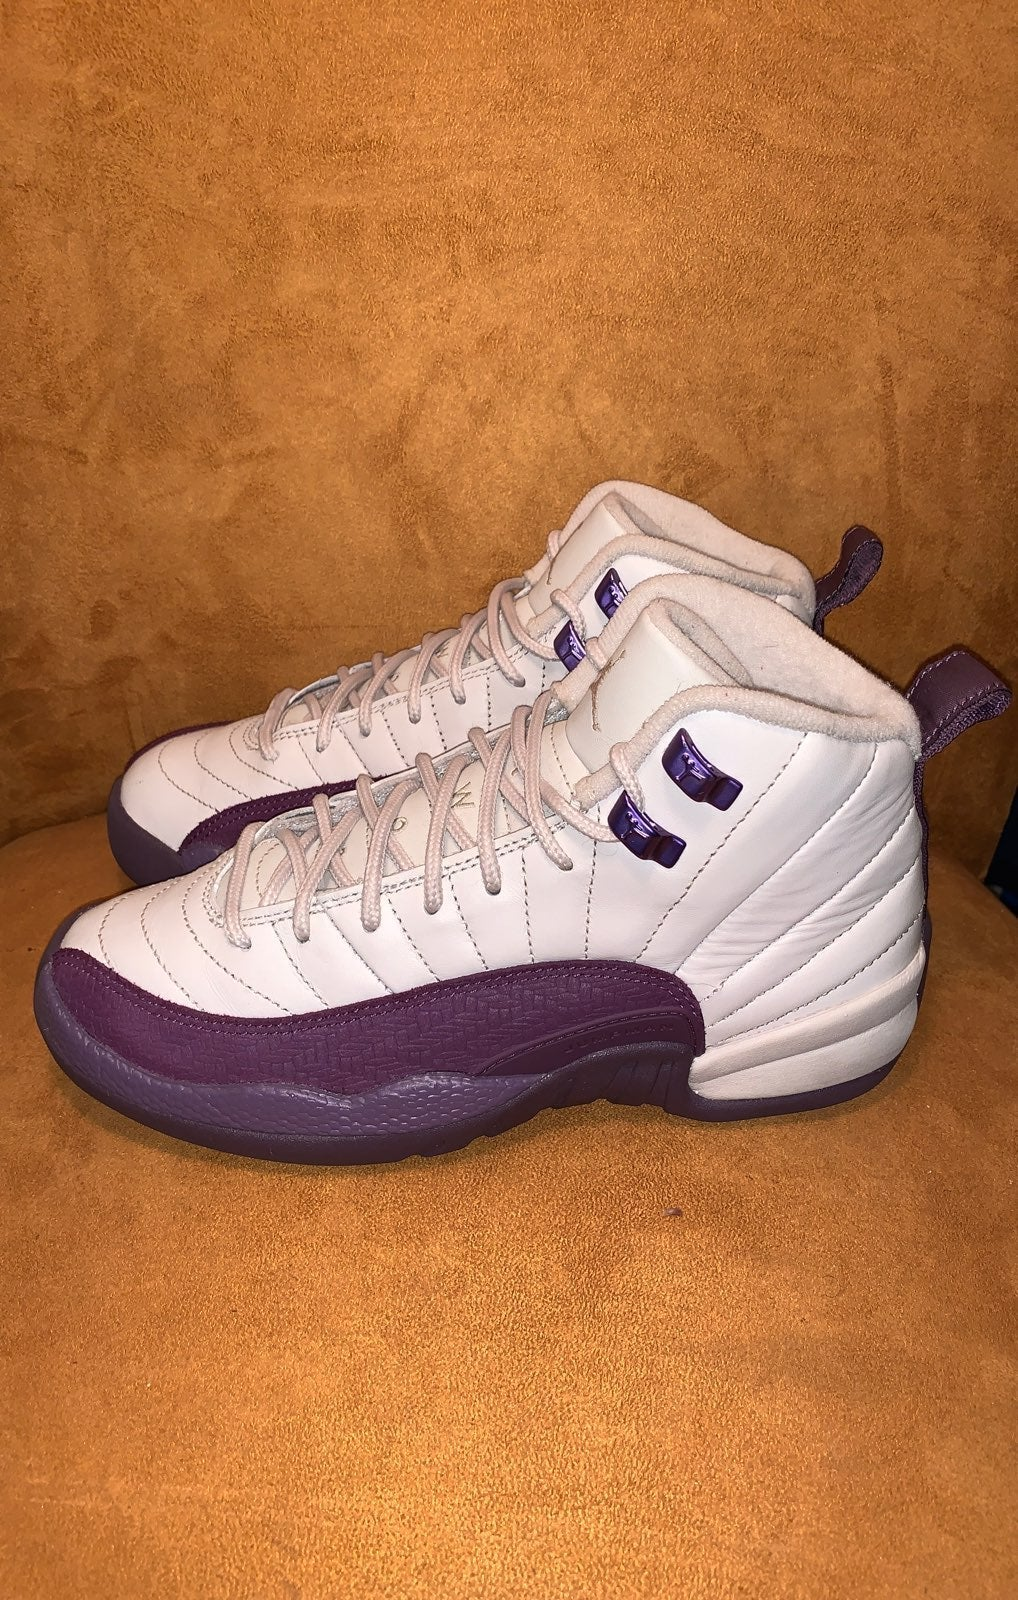 Air Jordan 12 Retro GS 'Pro Purple'